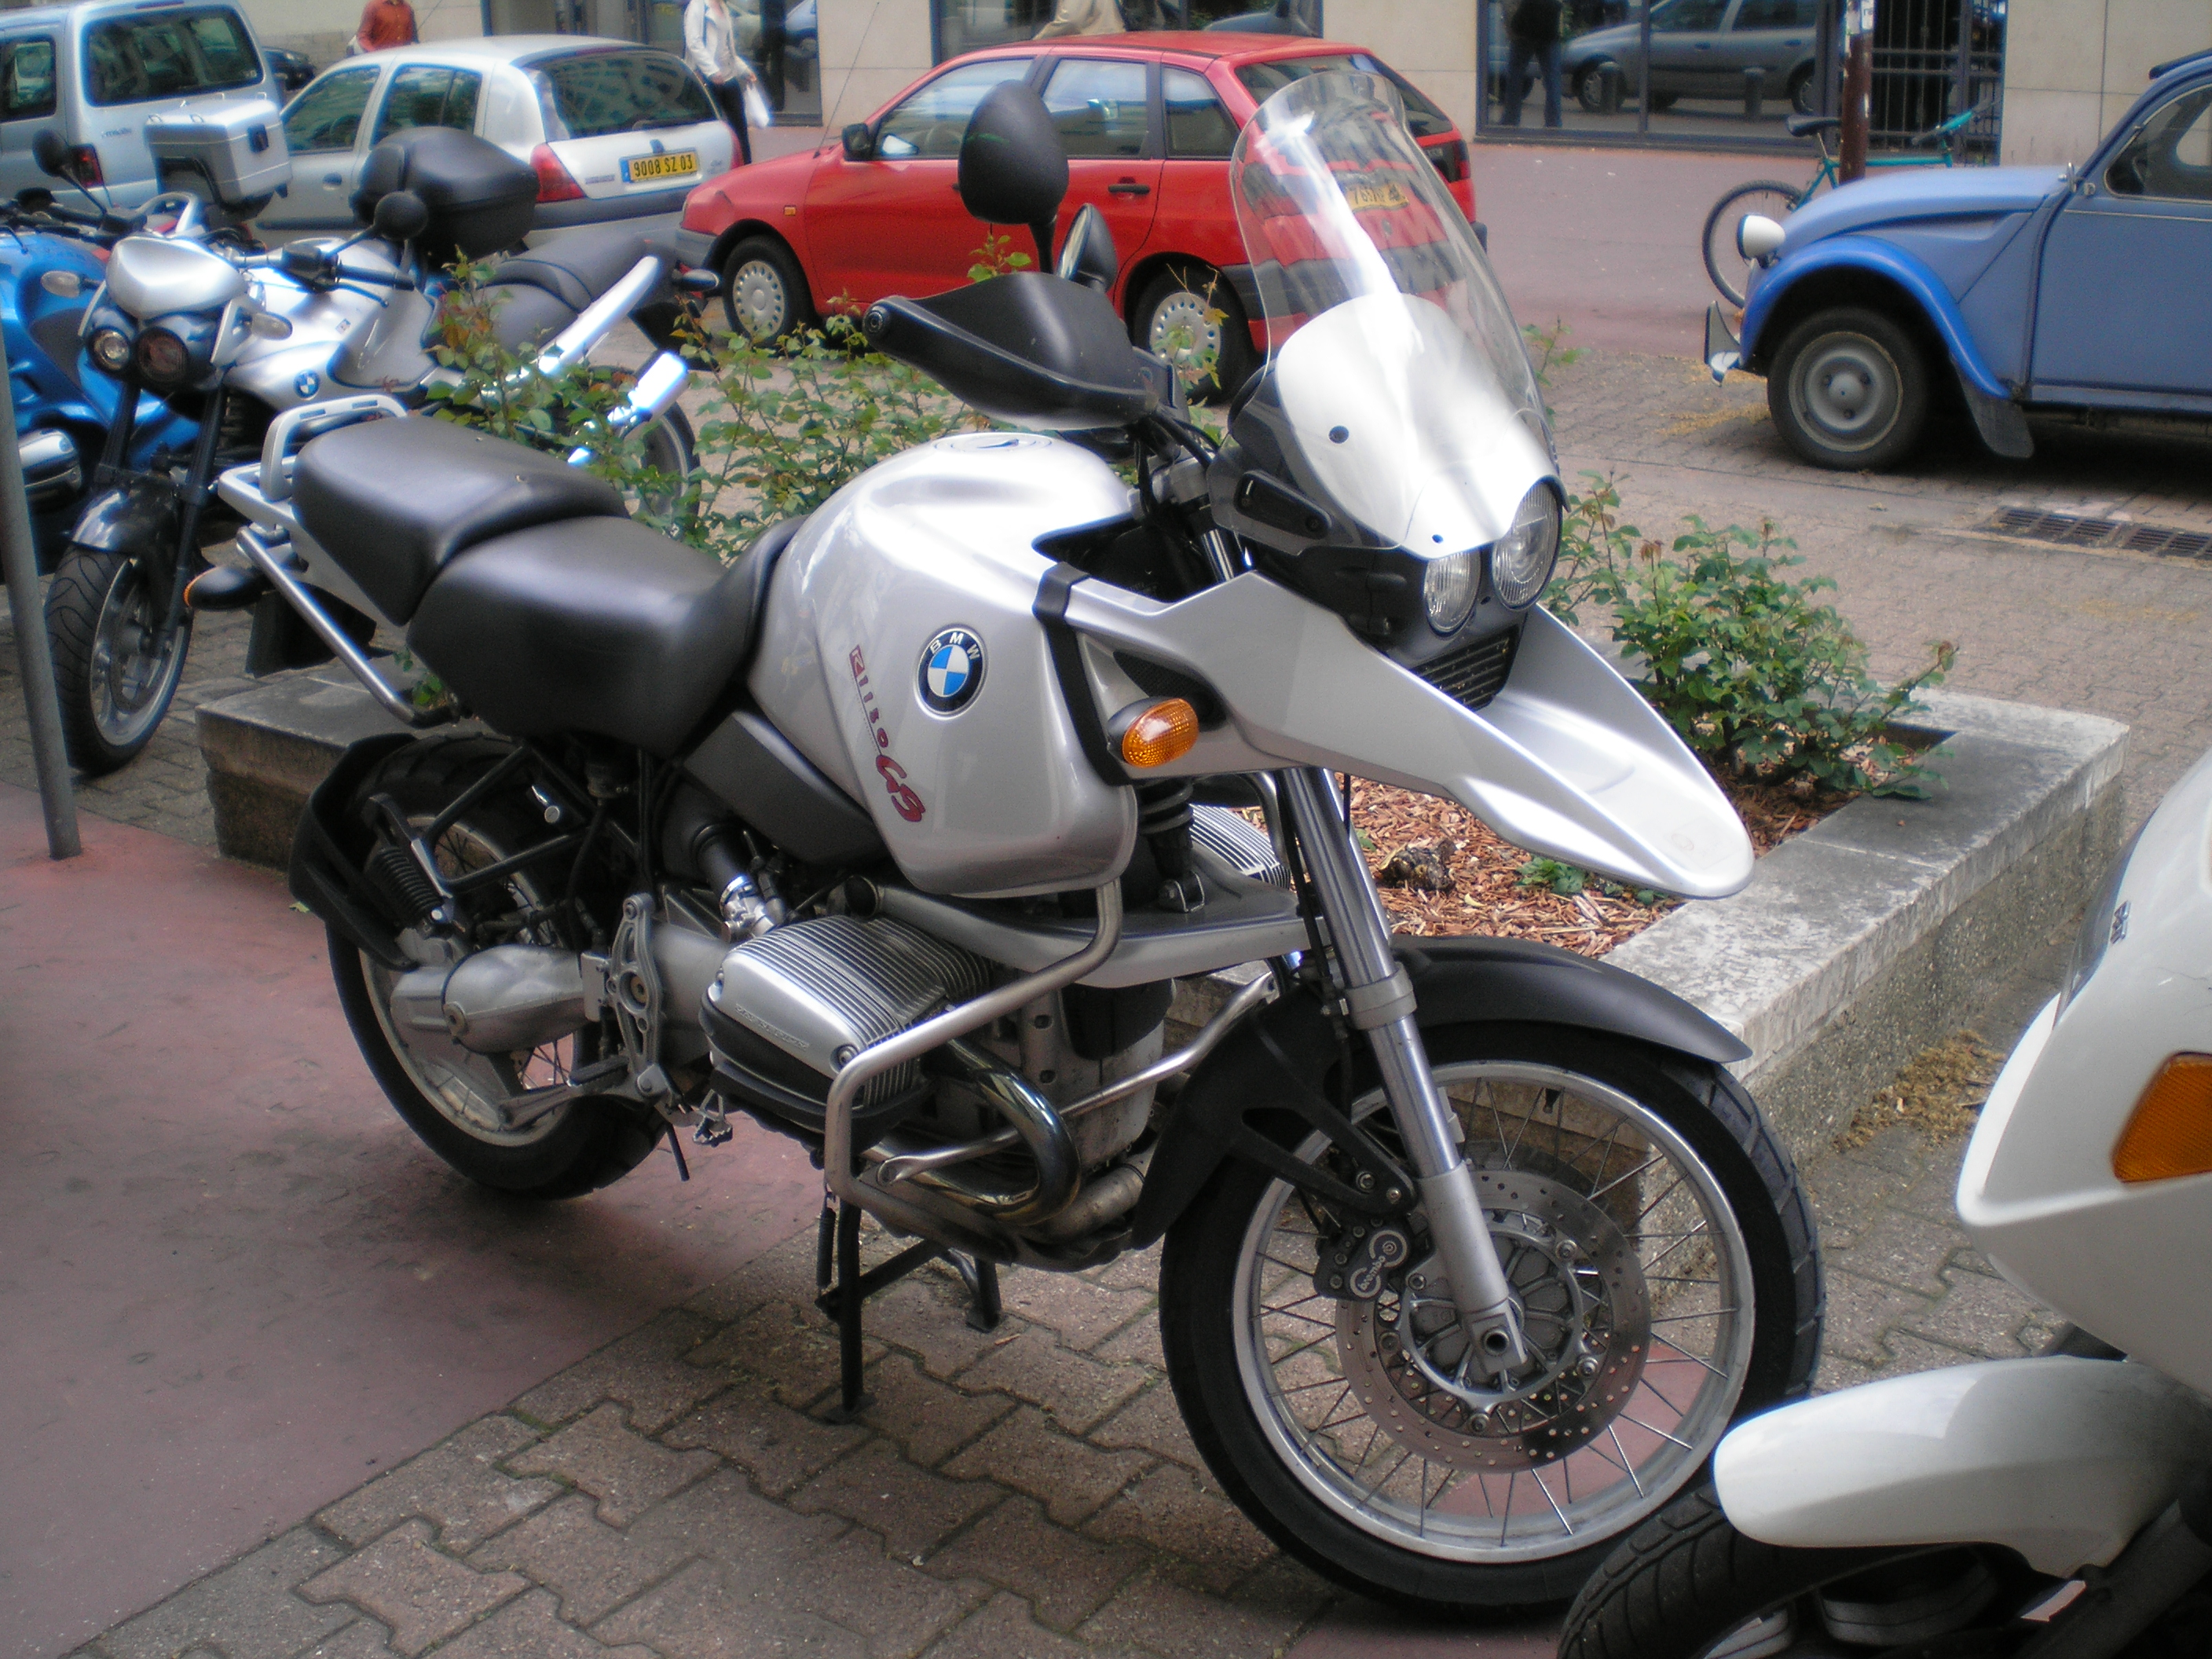 BMW R1100GS 1998 images #6333